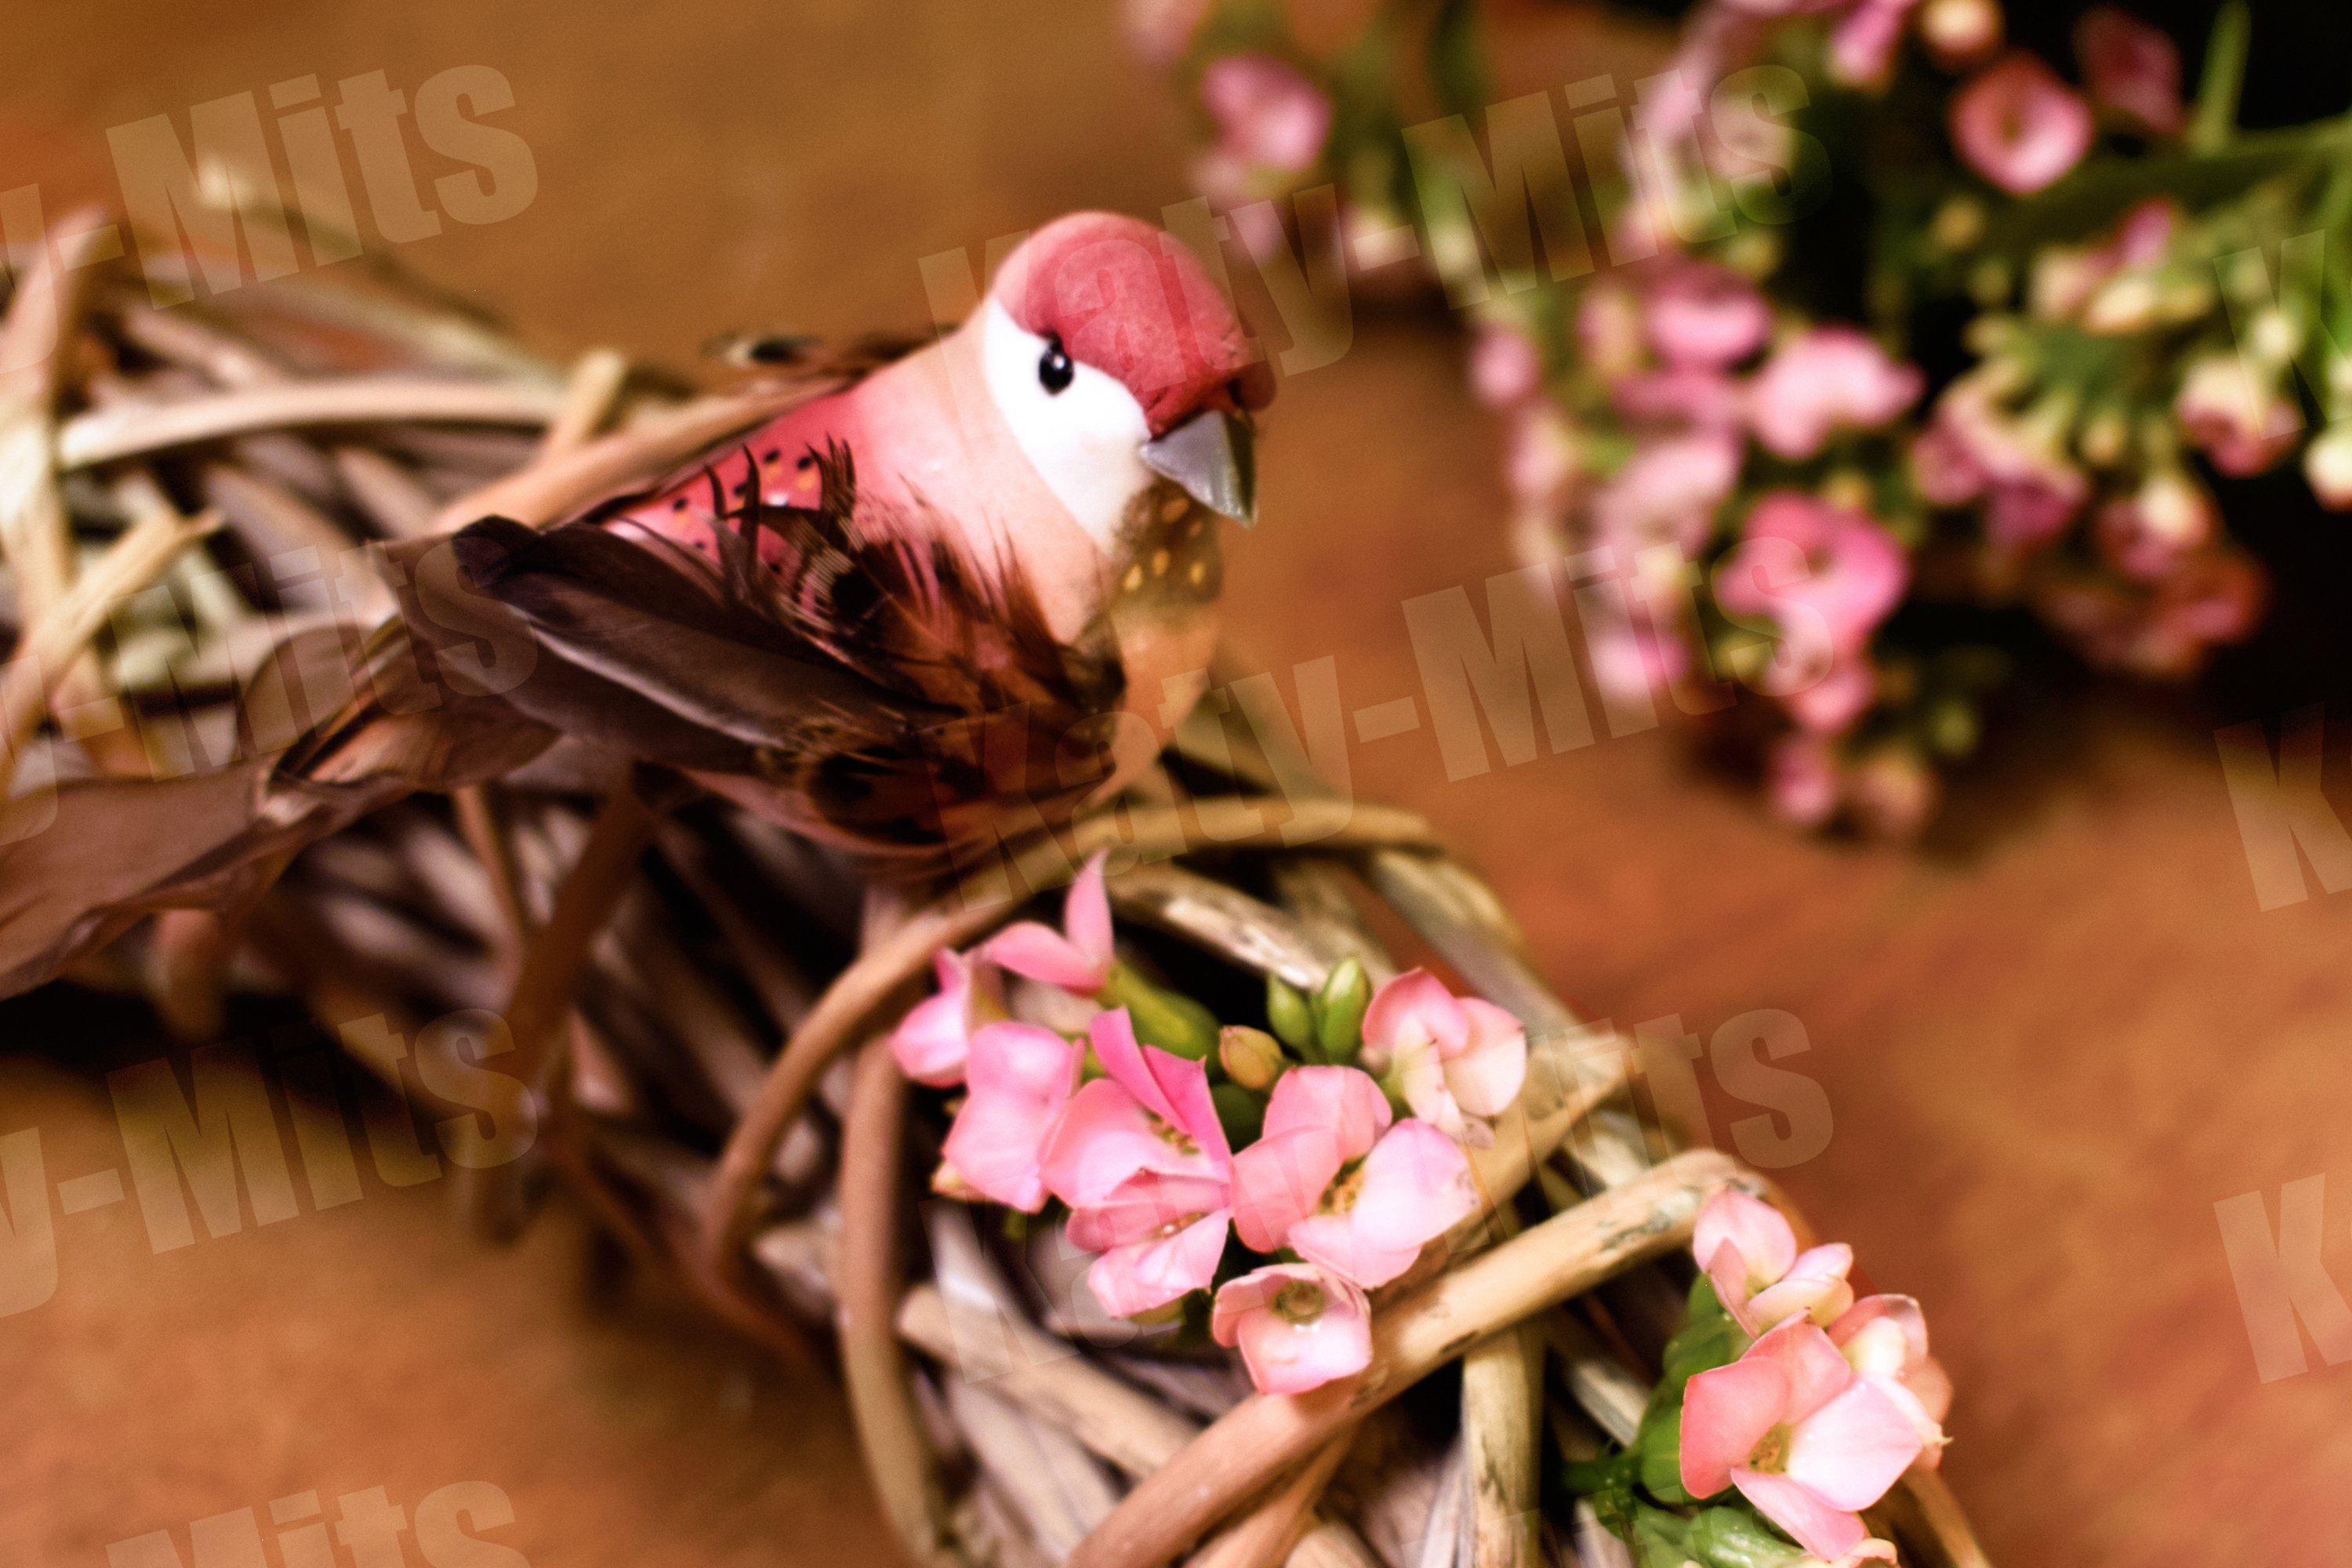 Decorative bird with braided wreath of twigs example image 1